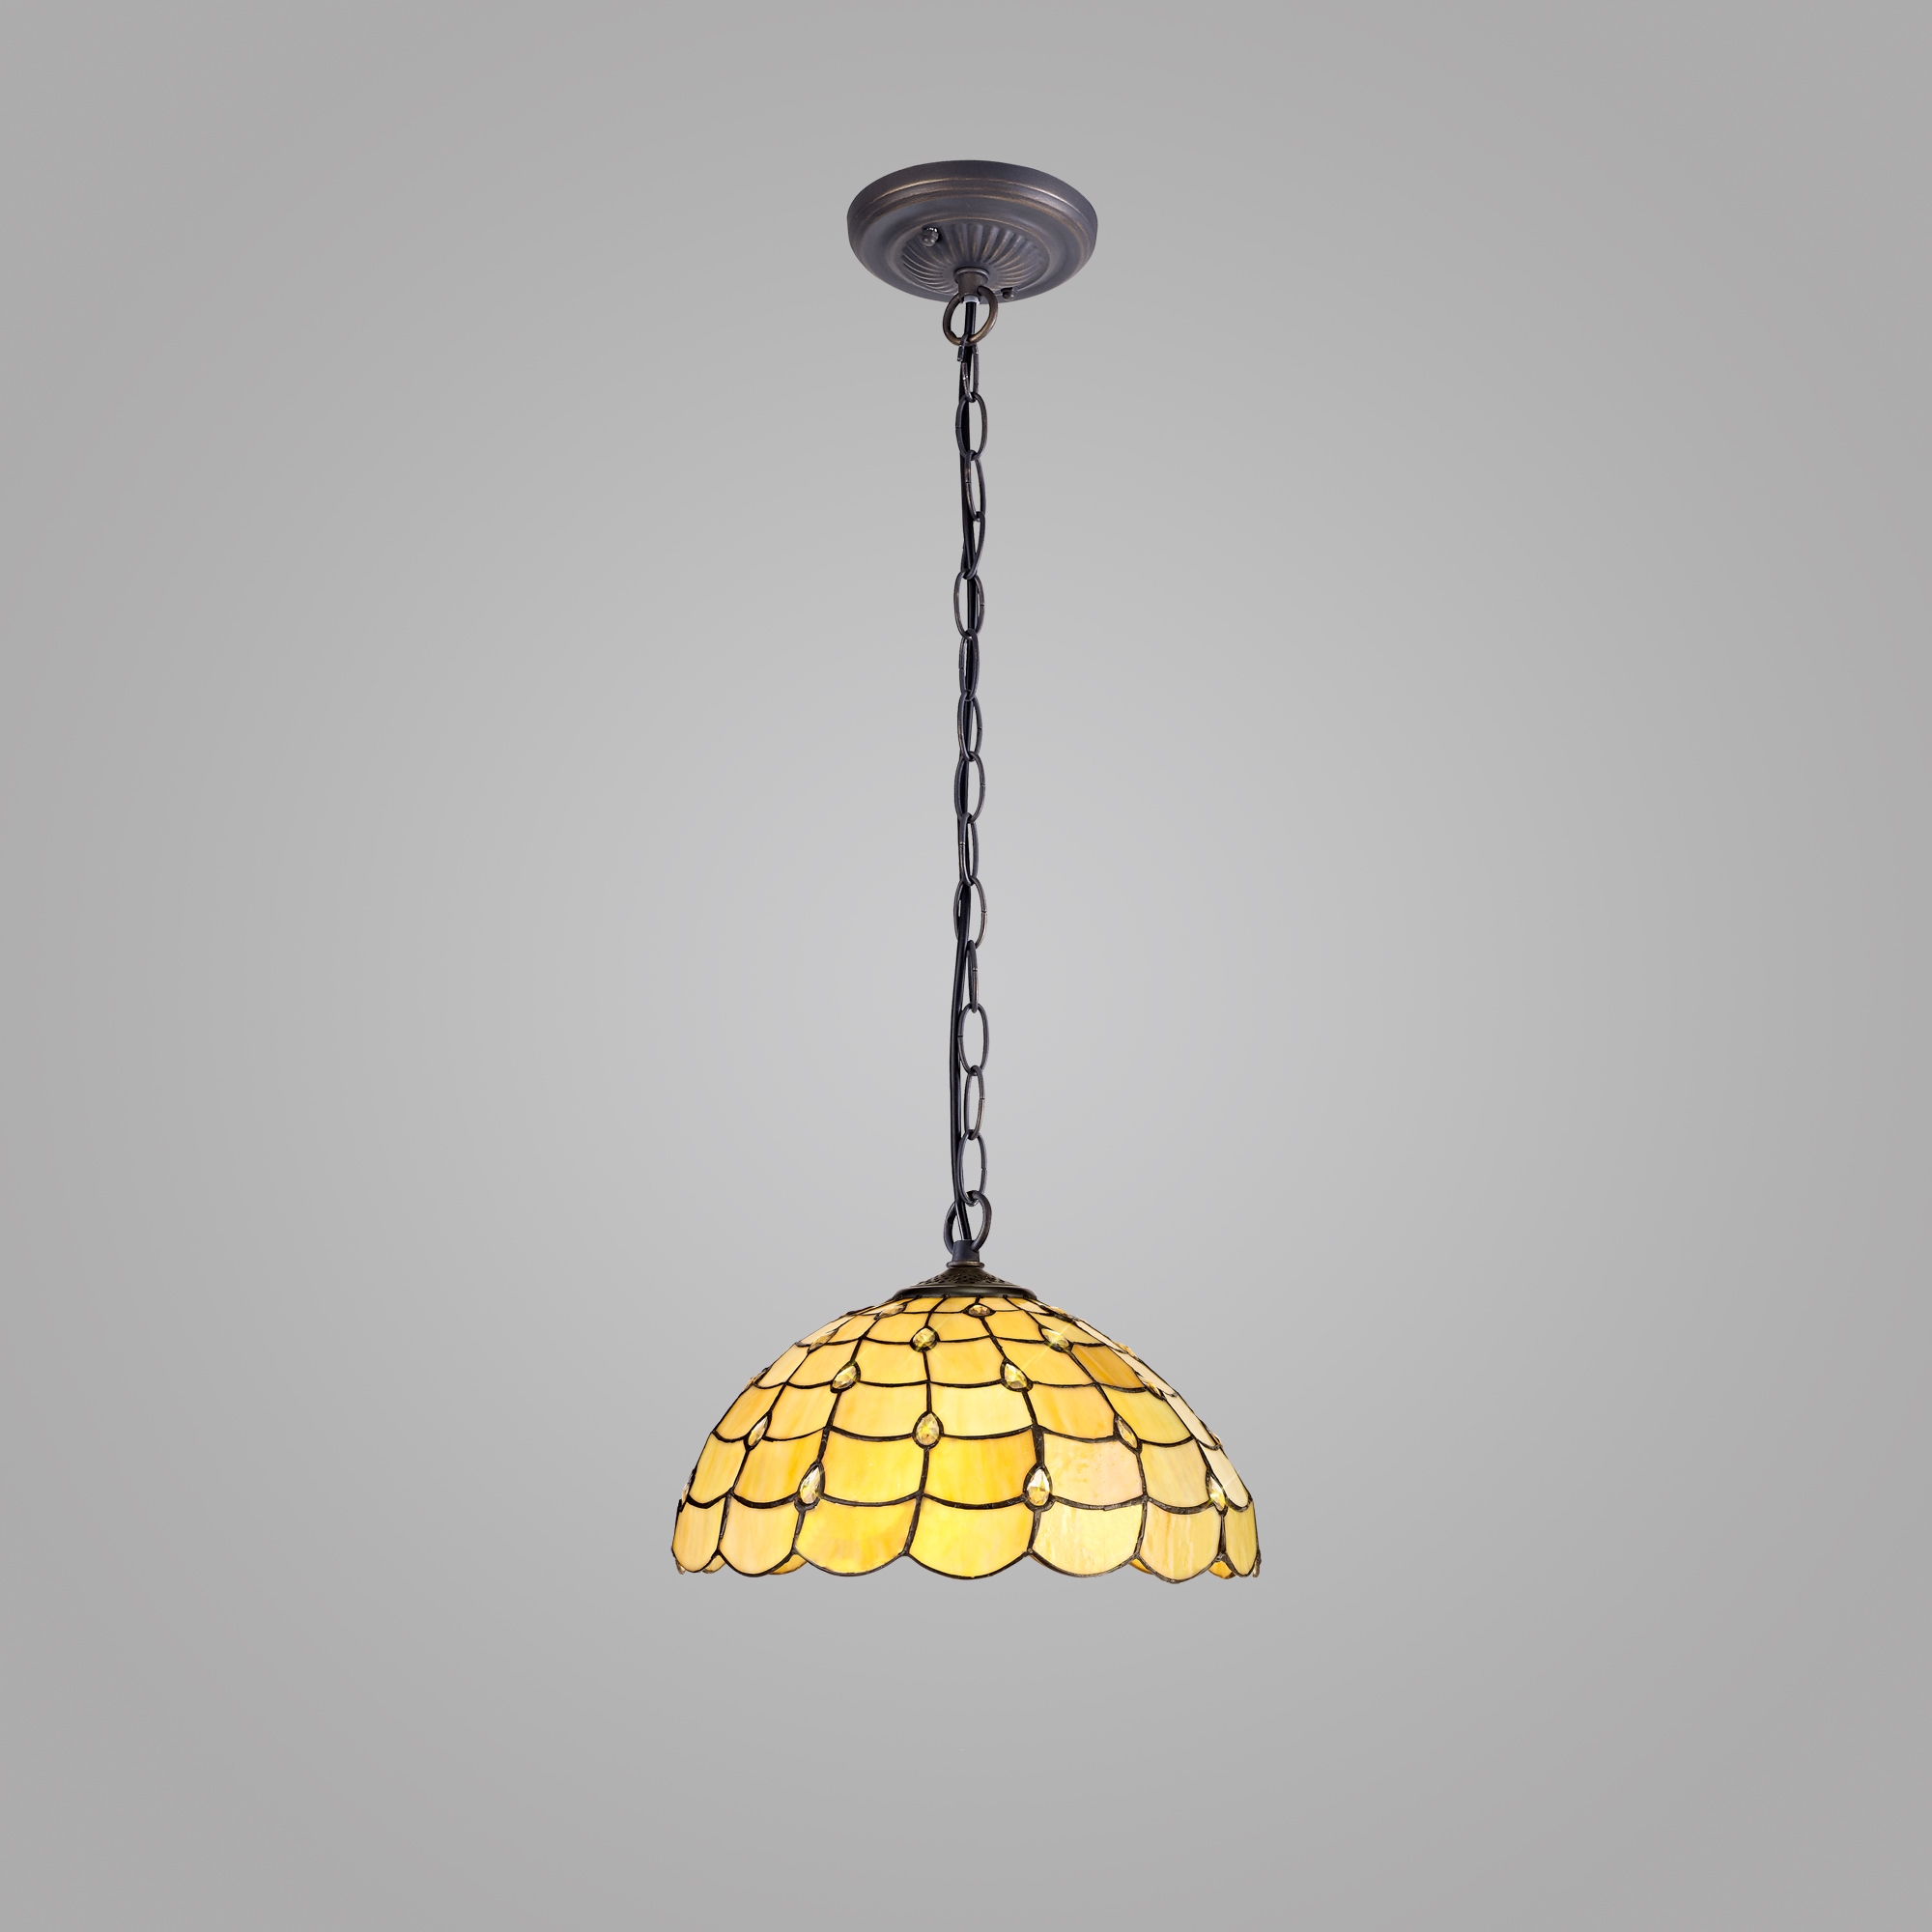 1 Light Downlighter Pendant E27 With 40cm Tiffany Shade, Beige/Clear Crystal/Aged Antique Brass